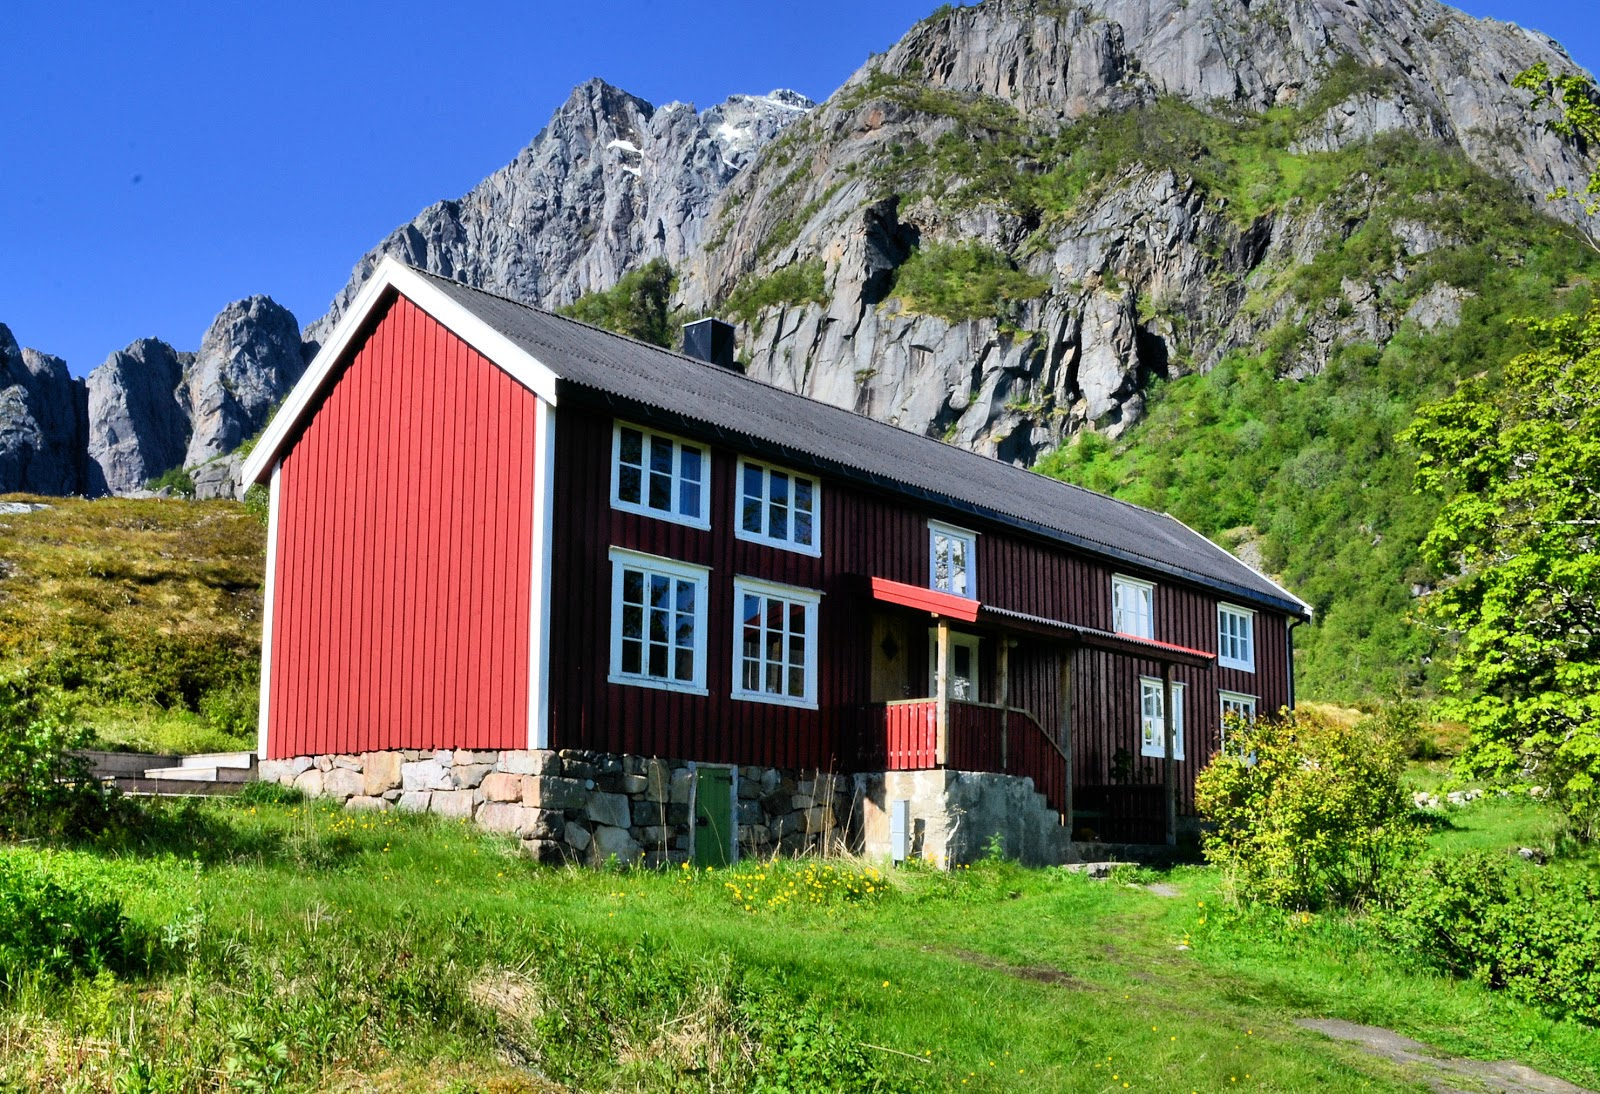 Our cabin at Kalle I Lofoten can accommodate up to 14 guests with five bedrooms, kitchen, living room, two bathrooms and a laundry room.